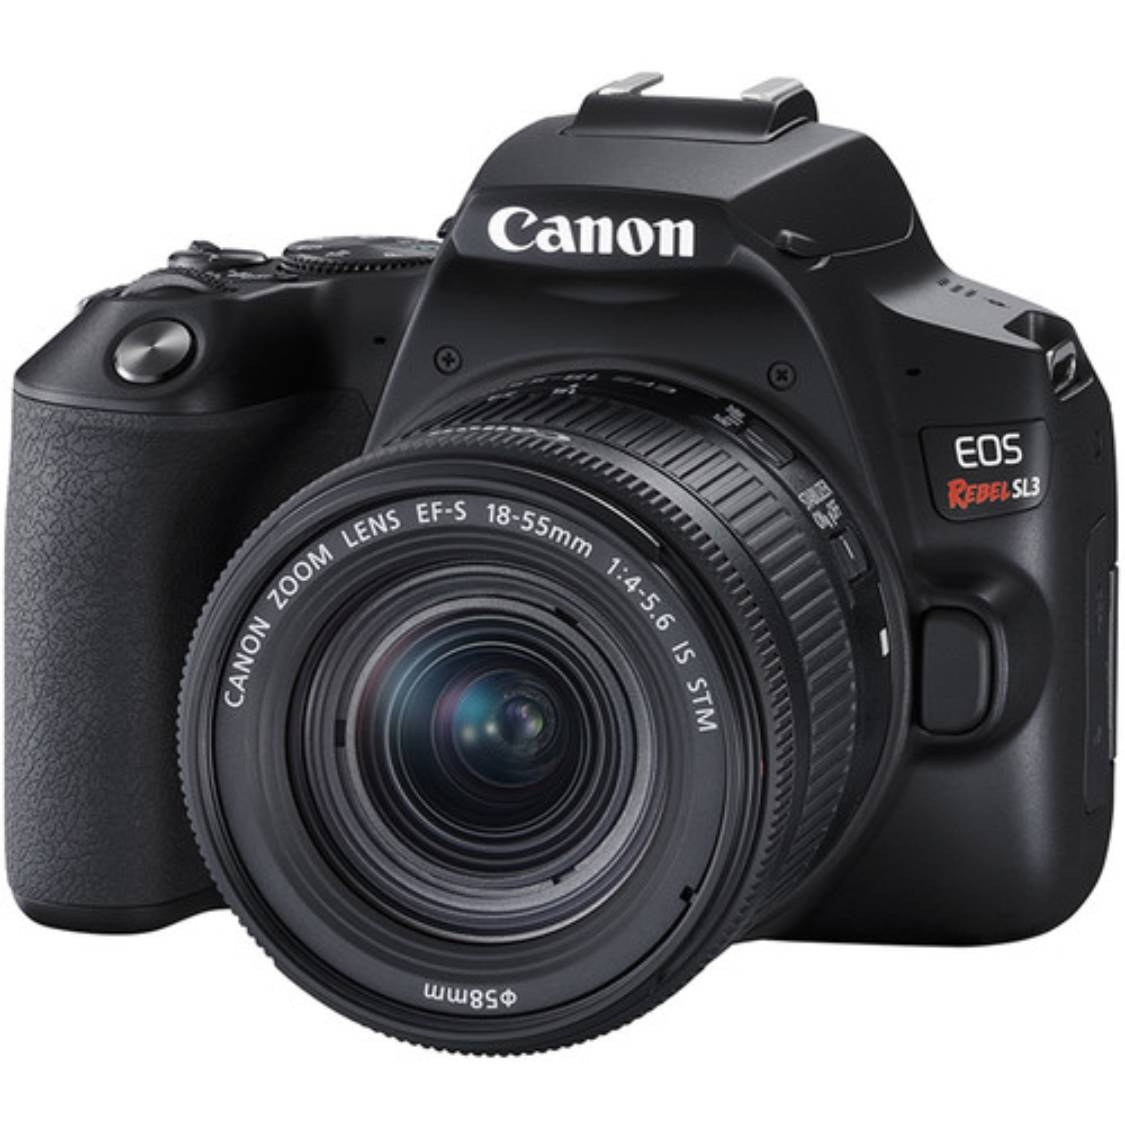 Canon Rebel SL3 with 18-55mm IS STM and 55-250mm STM Lenses (Black)